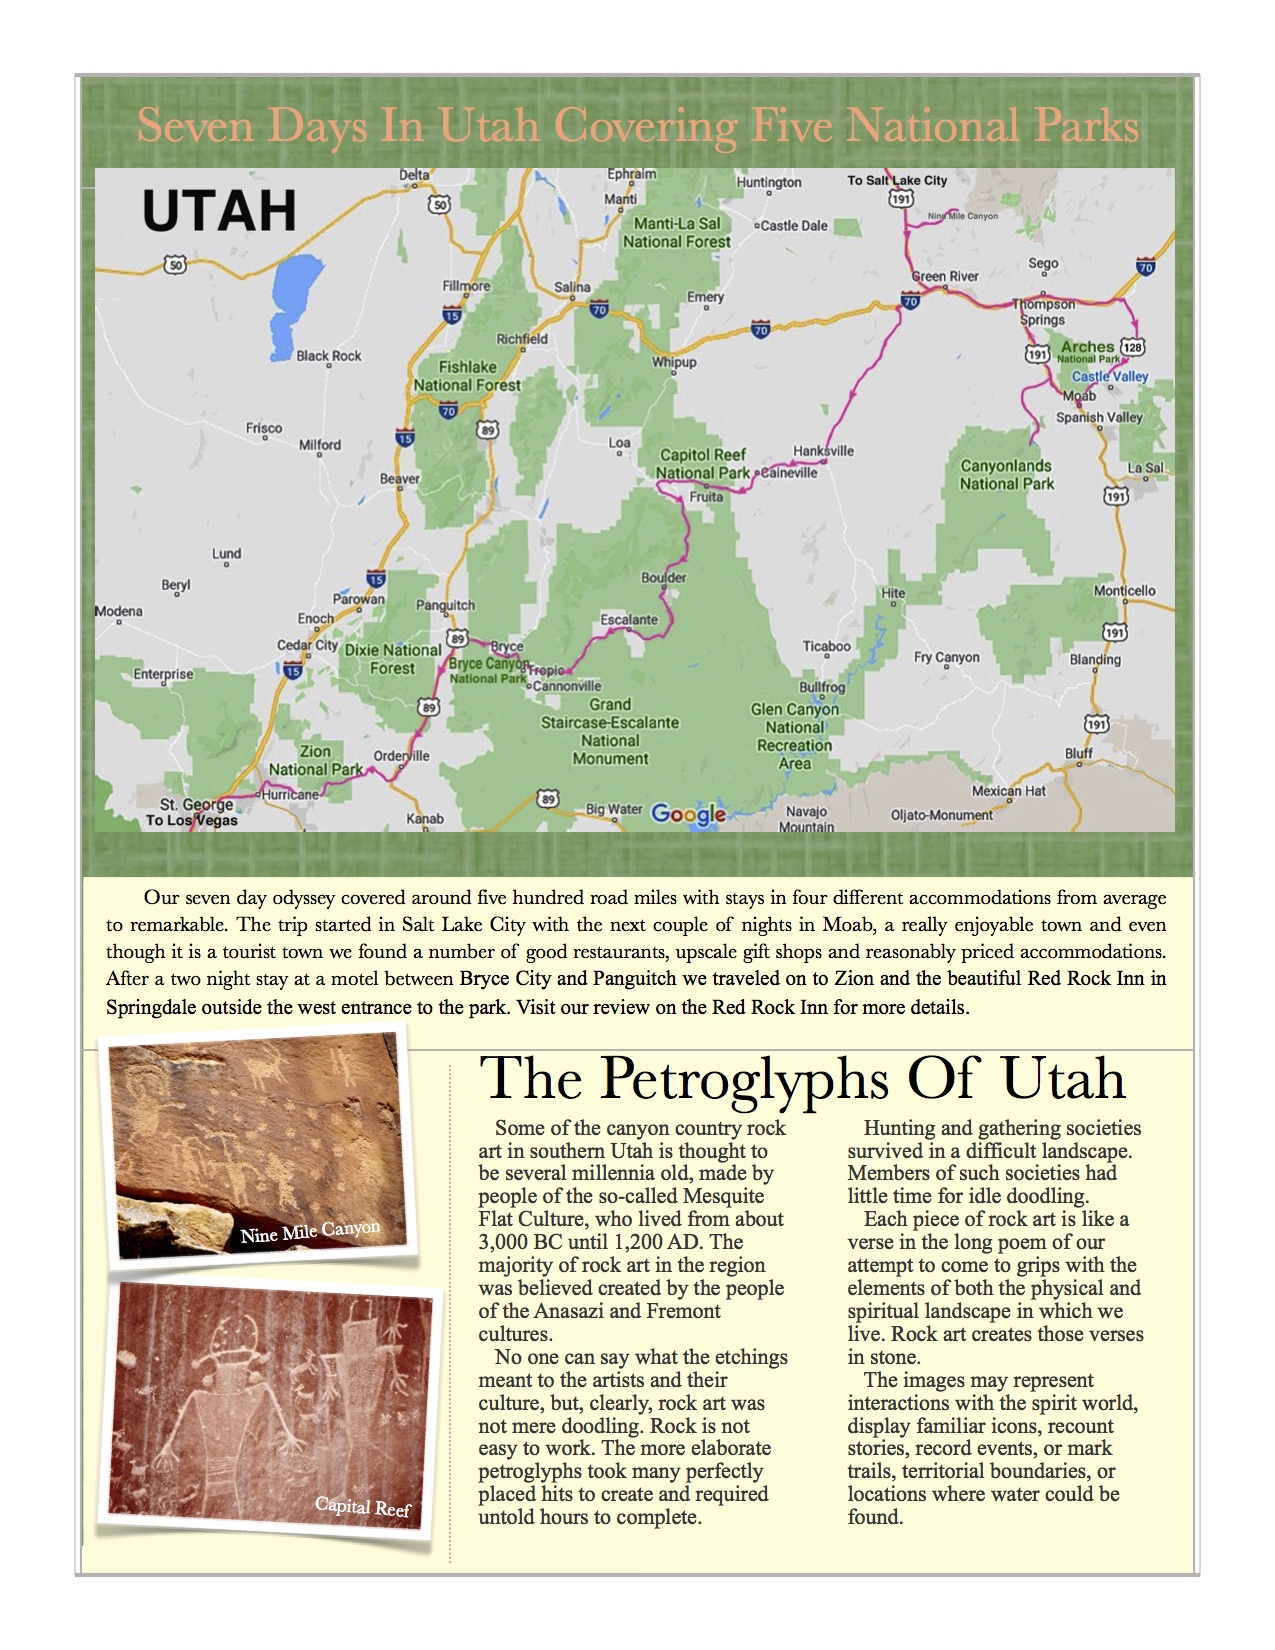 A map of Utah showing a park itinerary. Pictures of petroglyphs